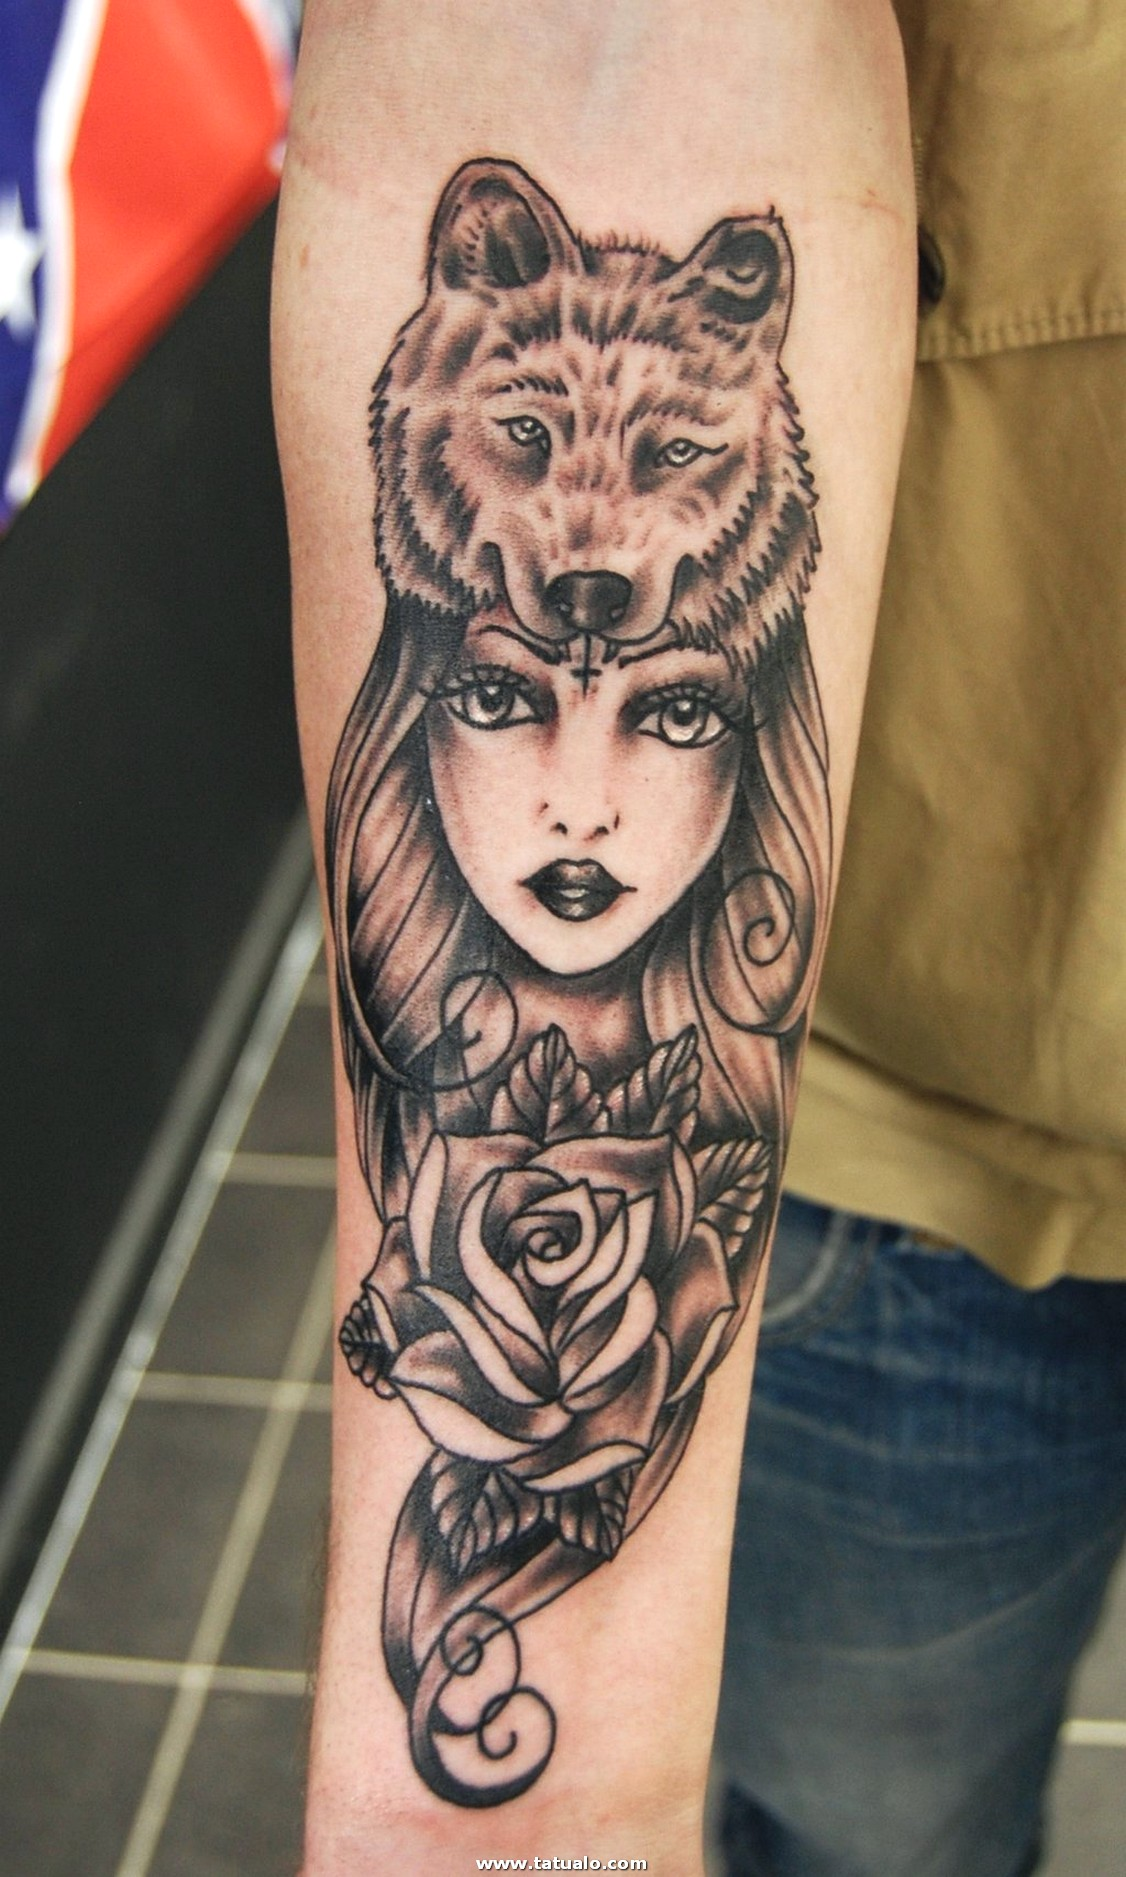 Wolf Tattoo Ideas For Women 1